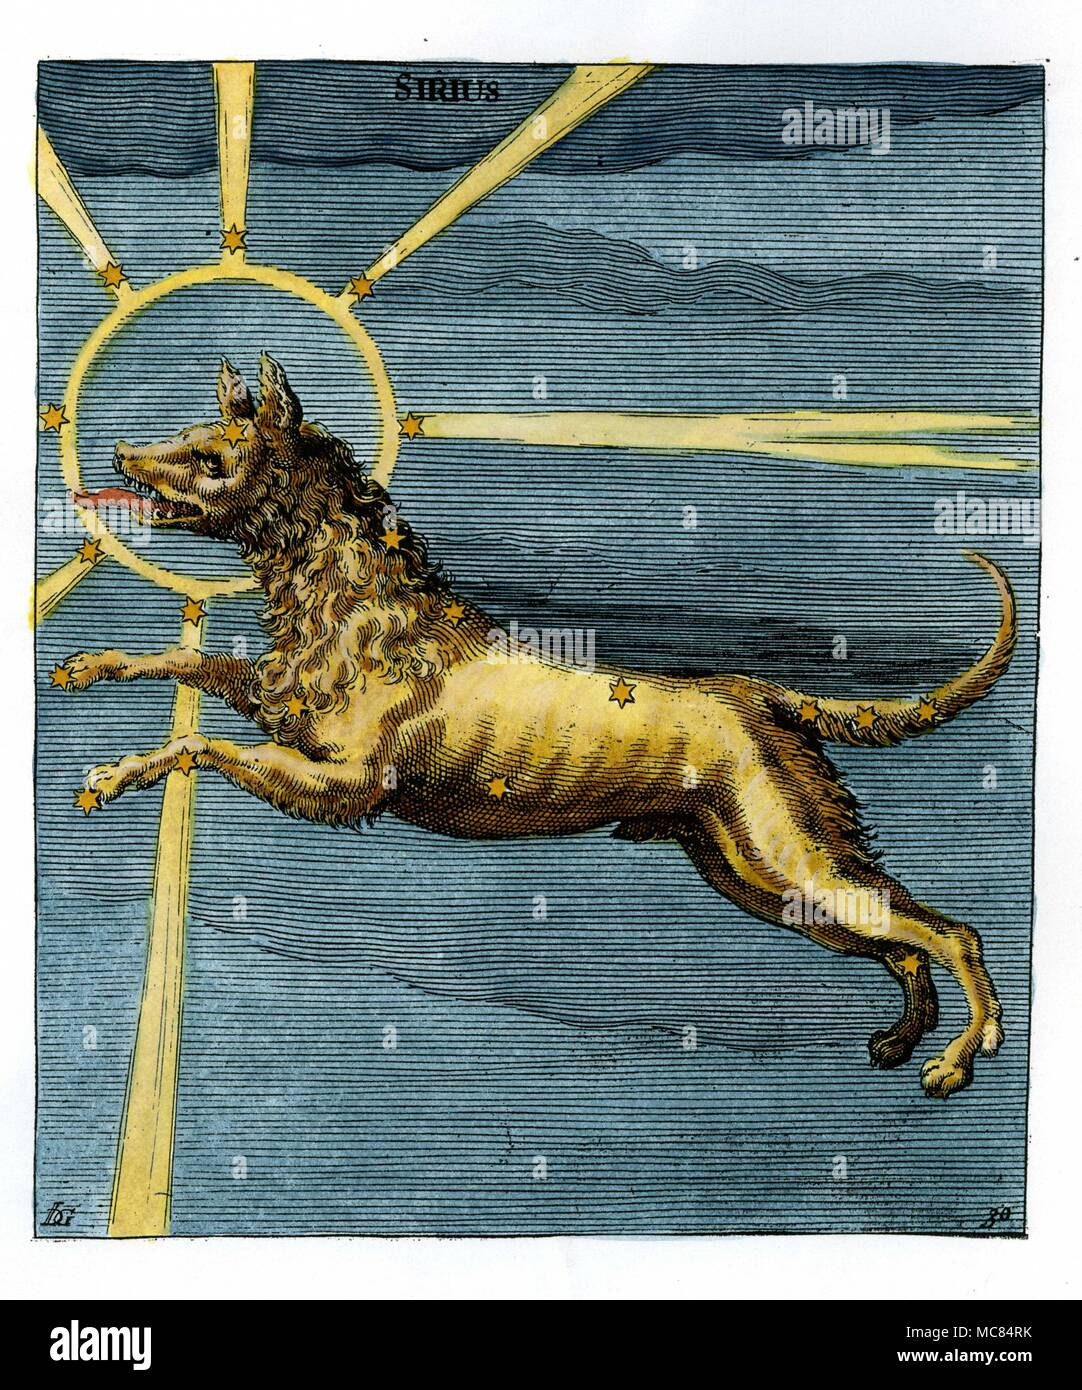 Image of the constellation Canis Major - though the print is itself marked [at the top] with the name Sirius, which denotes the major star in the asterism.  Seventeen century hand-colourd engraving, based on the  ninth century Aratus illumination in Leiden.  Aratus was born about 315 BC, in Soli, and was author of the early star-book  'Phaenomena'. - Stock Image